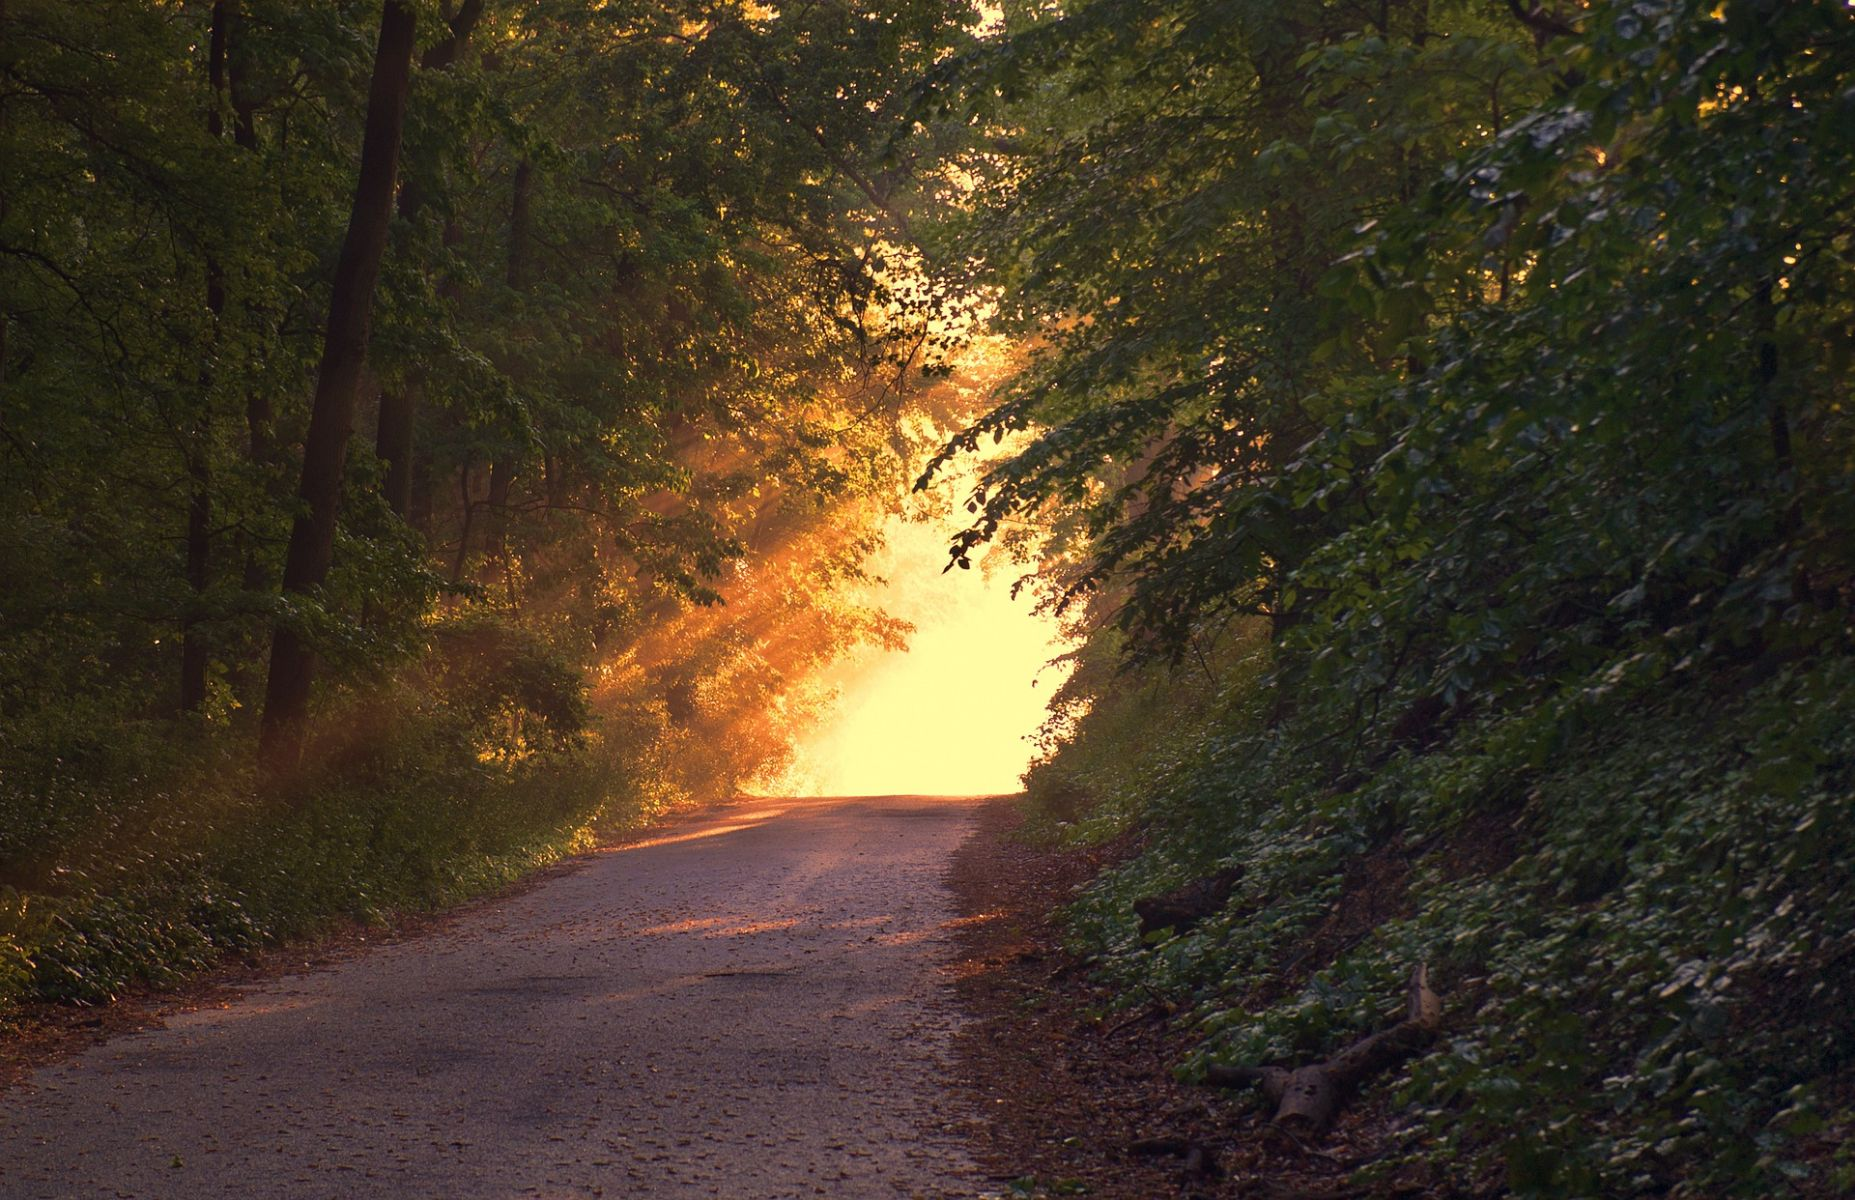 Sunlight countryside road.jpg